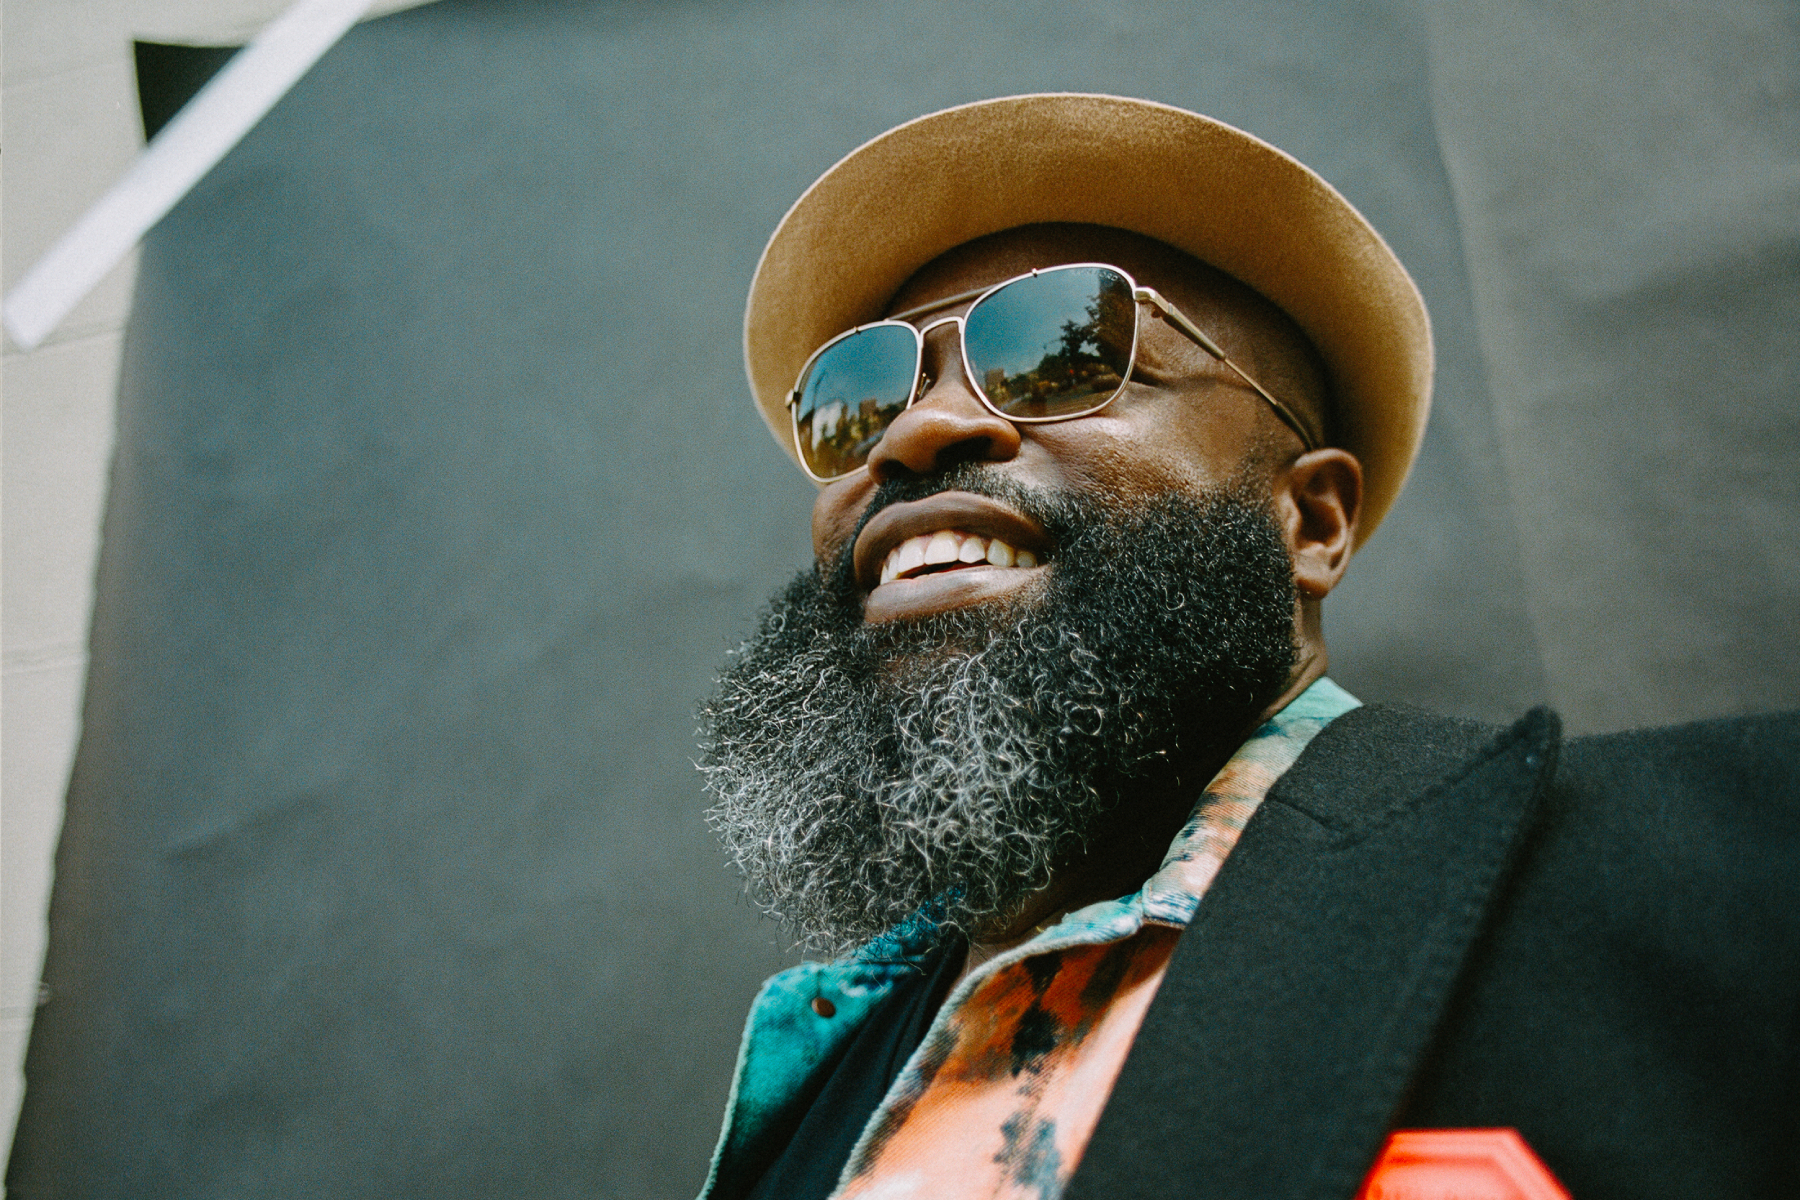 Black Thought Drops One of His Earliest Freestyles in New Clip From Audible Original